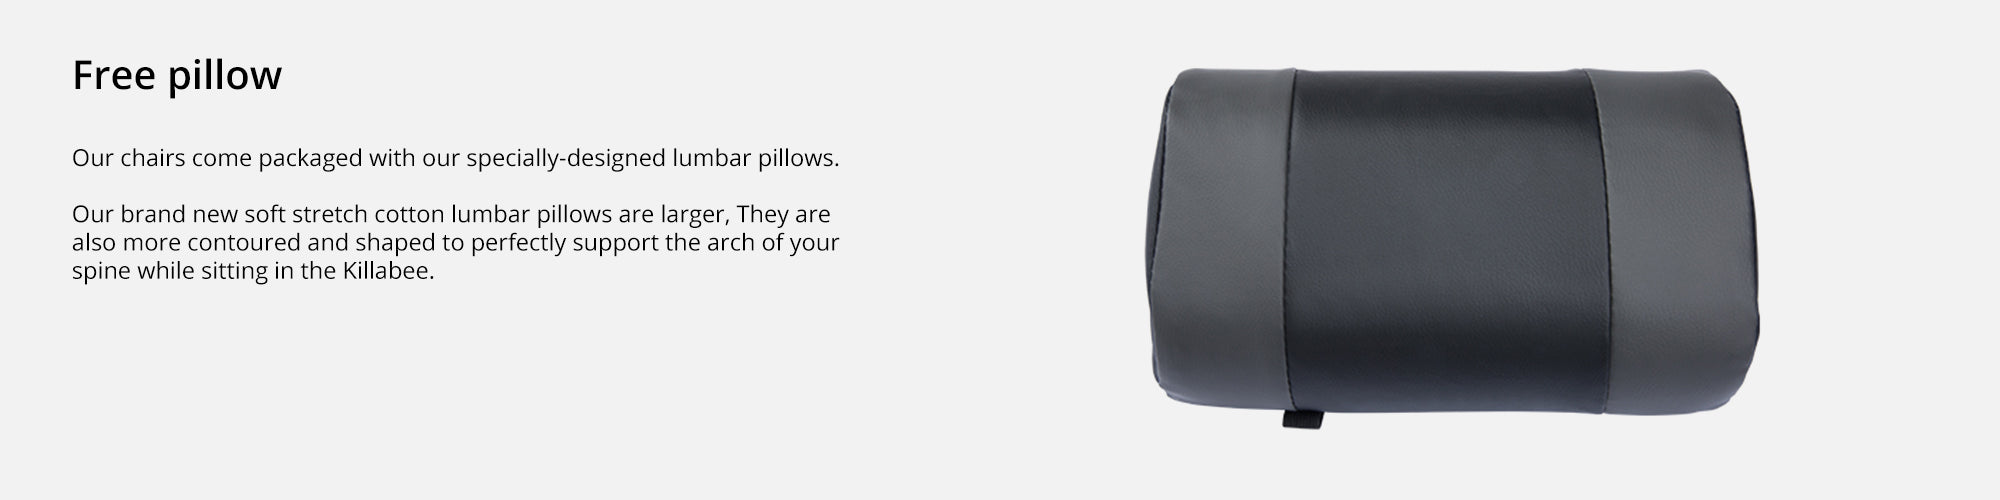 Features (Padded Pillow)